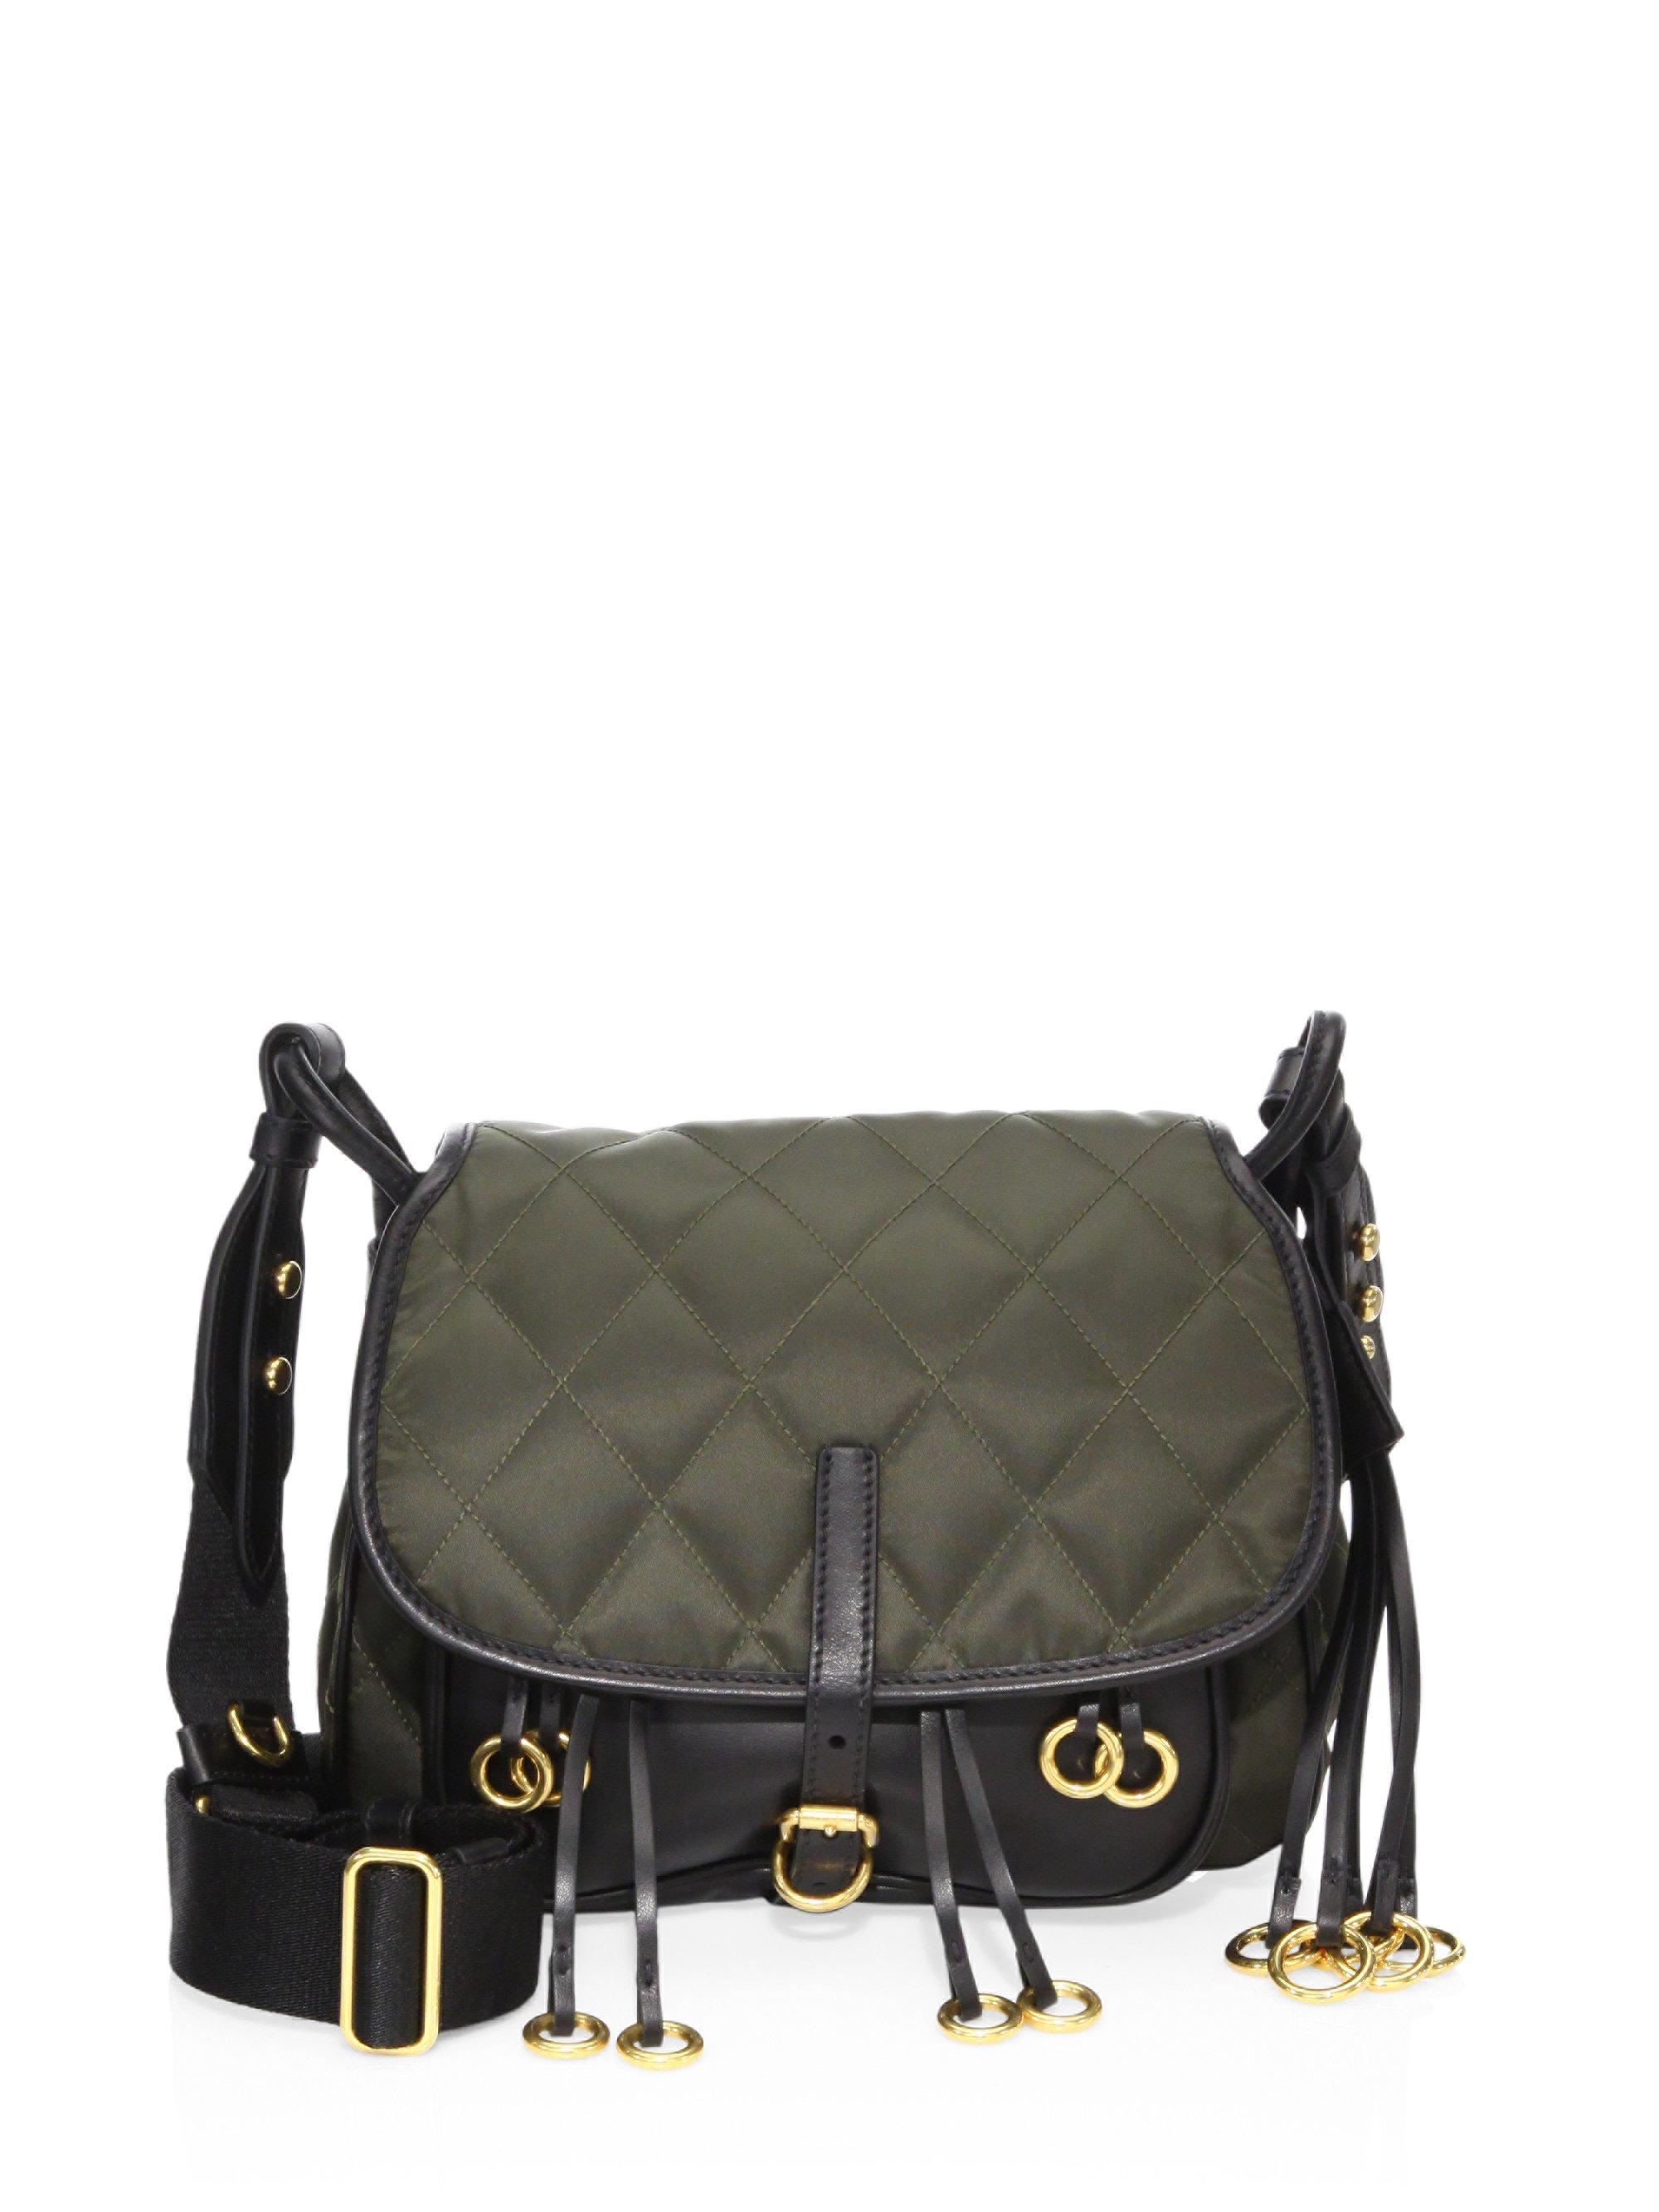 f3c446ea8cd8 ... new zealand lyst prada corsaire crepe and leather messenger bag in  green 029c6 21cc2 ...